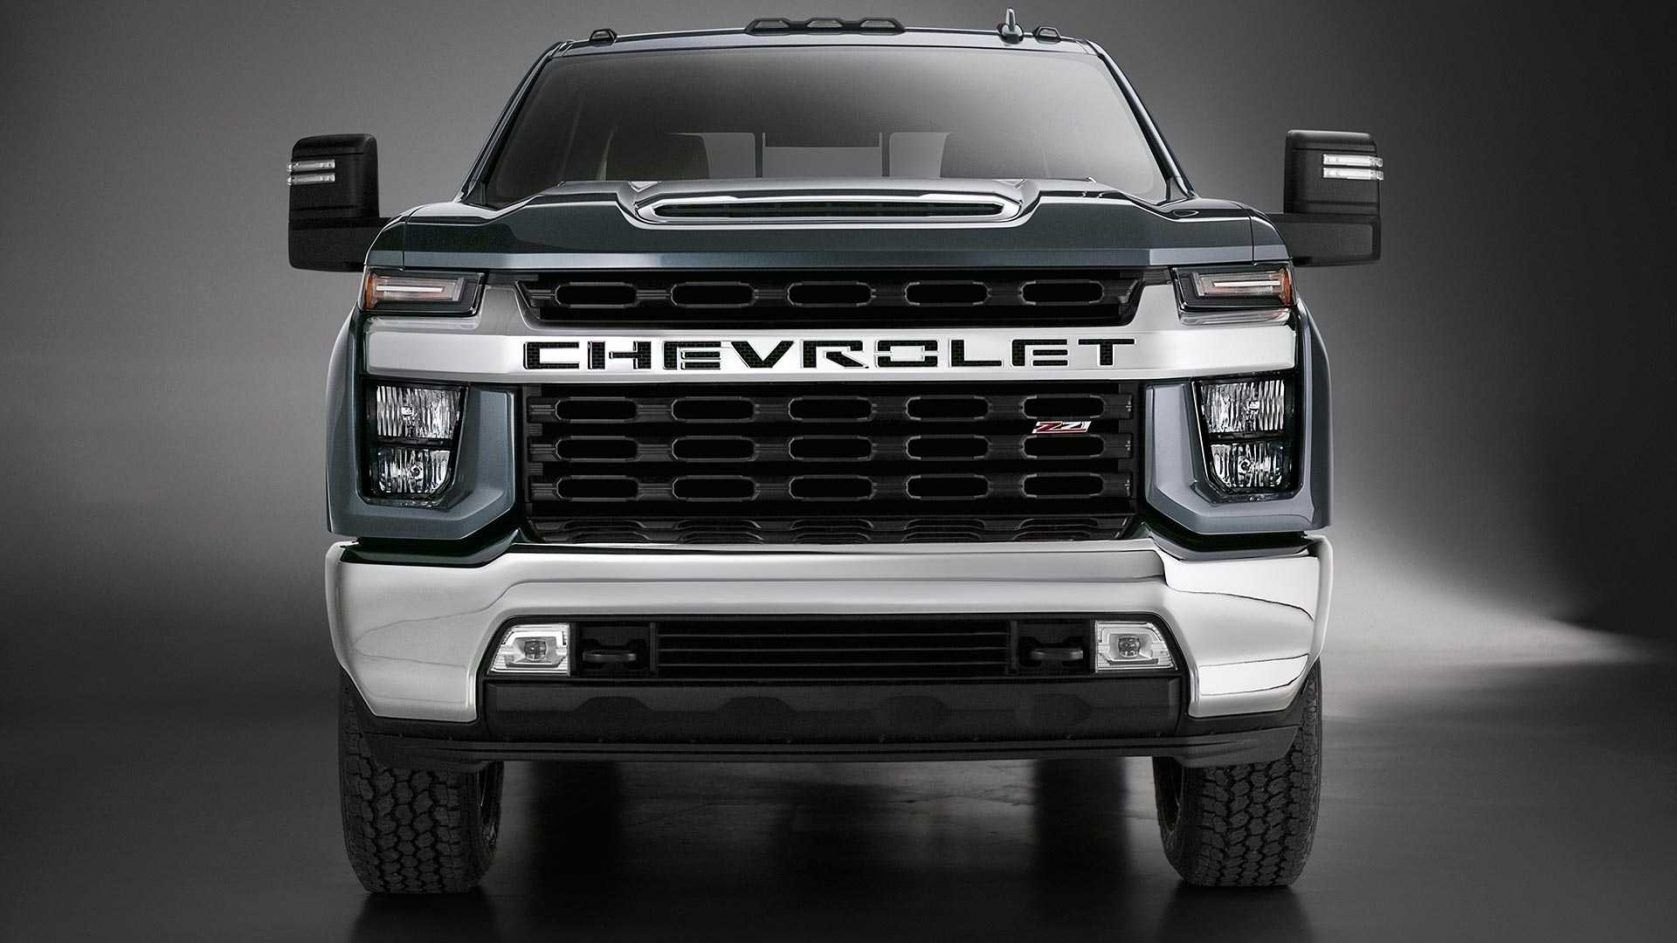 If The Reports Are True, The New 2021 Chevy Silverado 1500 2021 Chevy Silverado 1500 Double Cab Accessories, Seat Covers, Models